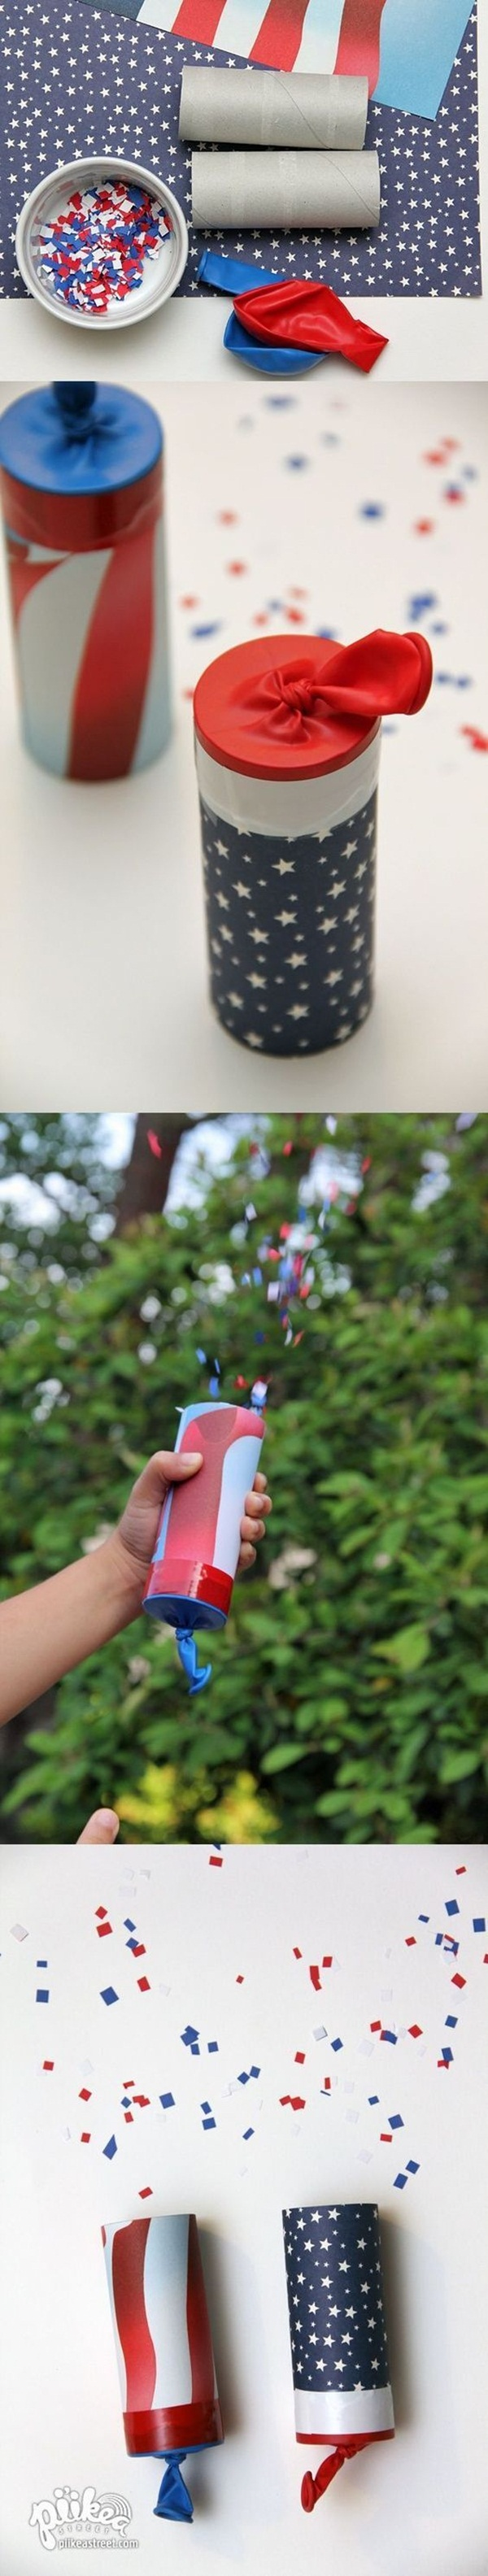 Fourth of July Crafts and Projects7